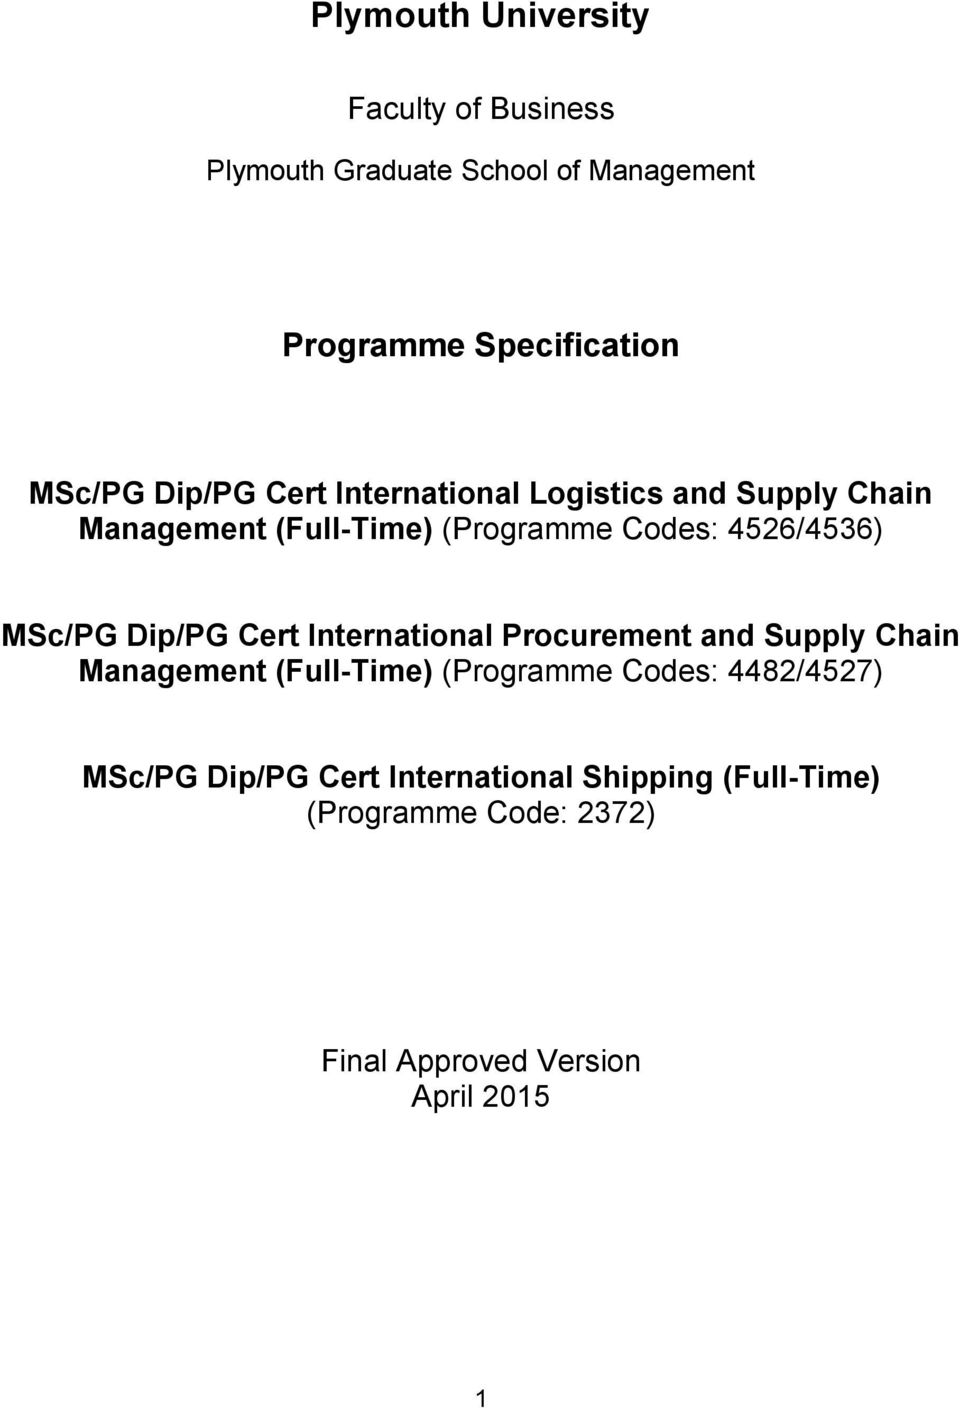 MSc/PG Dip/PG Cert International Procurement and Supply Chain Management (Full-Time) (Programme Codes: